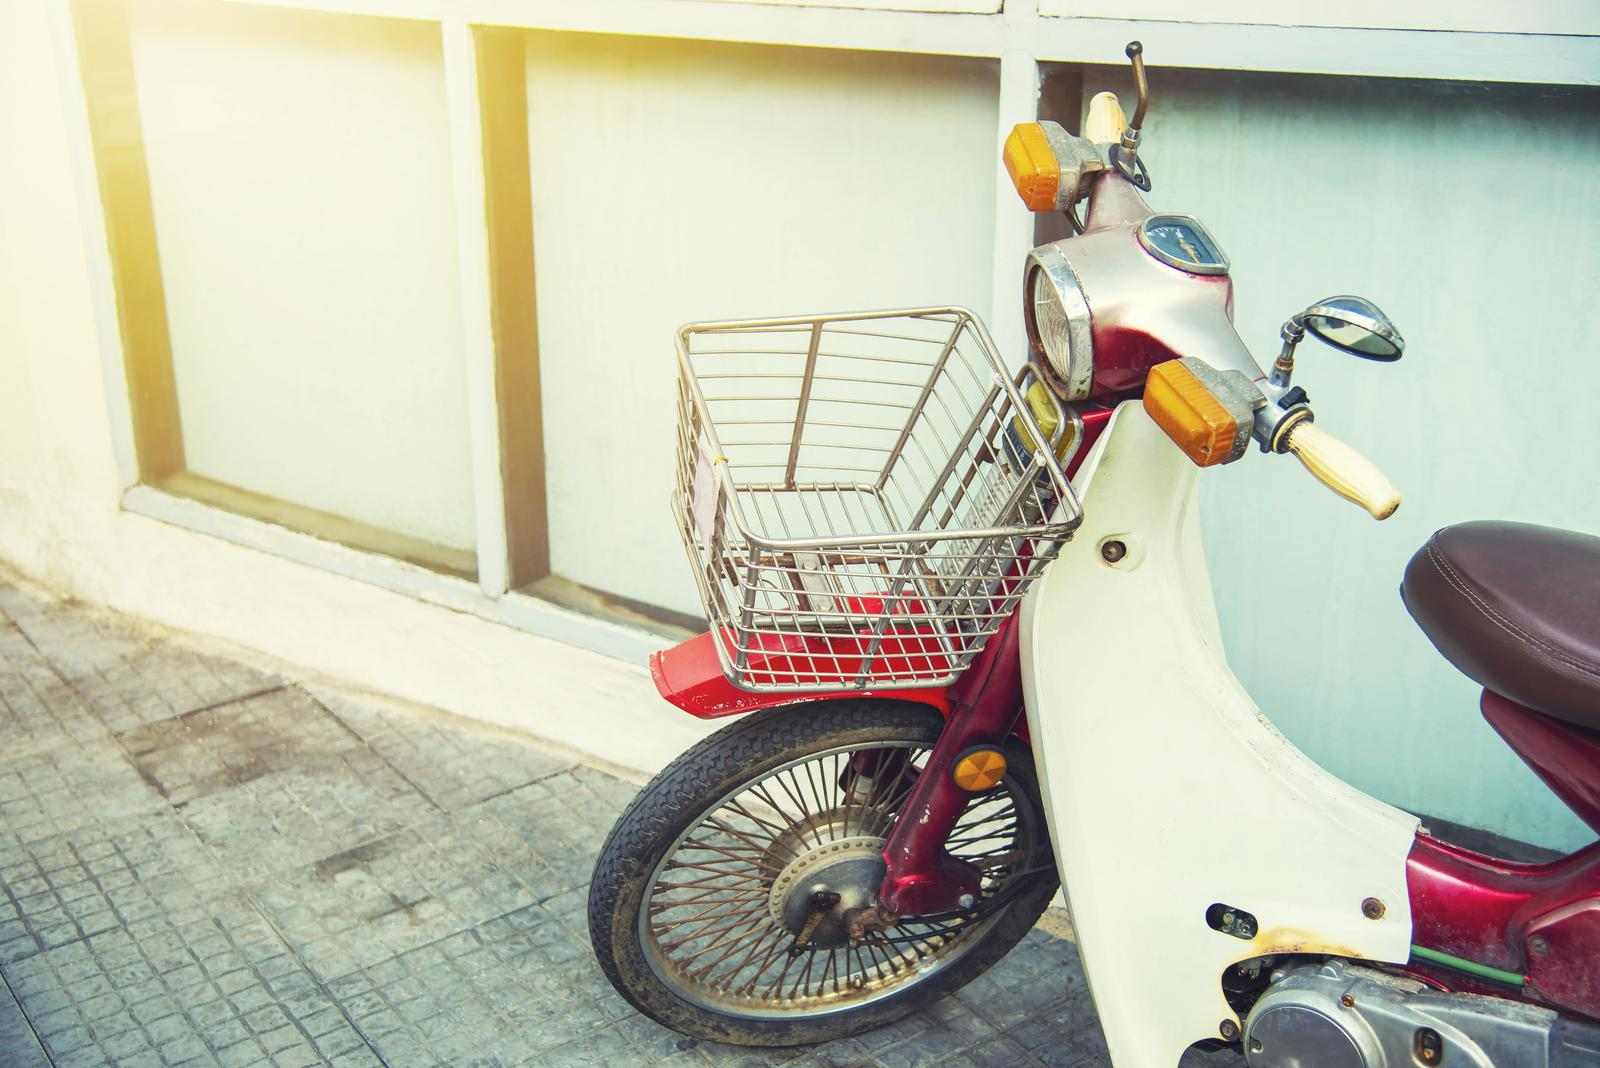 Sale, maintenance and repair of motorcycles and related parts and accessories in Tartu county